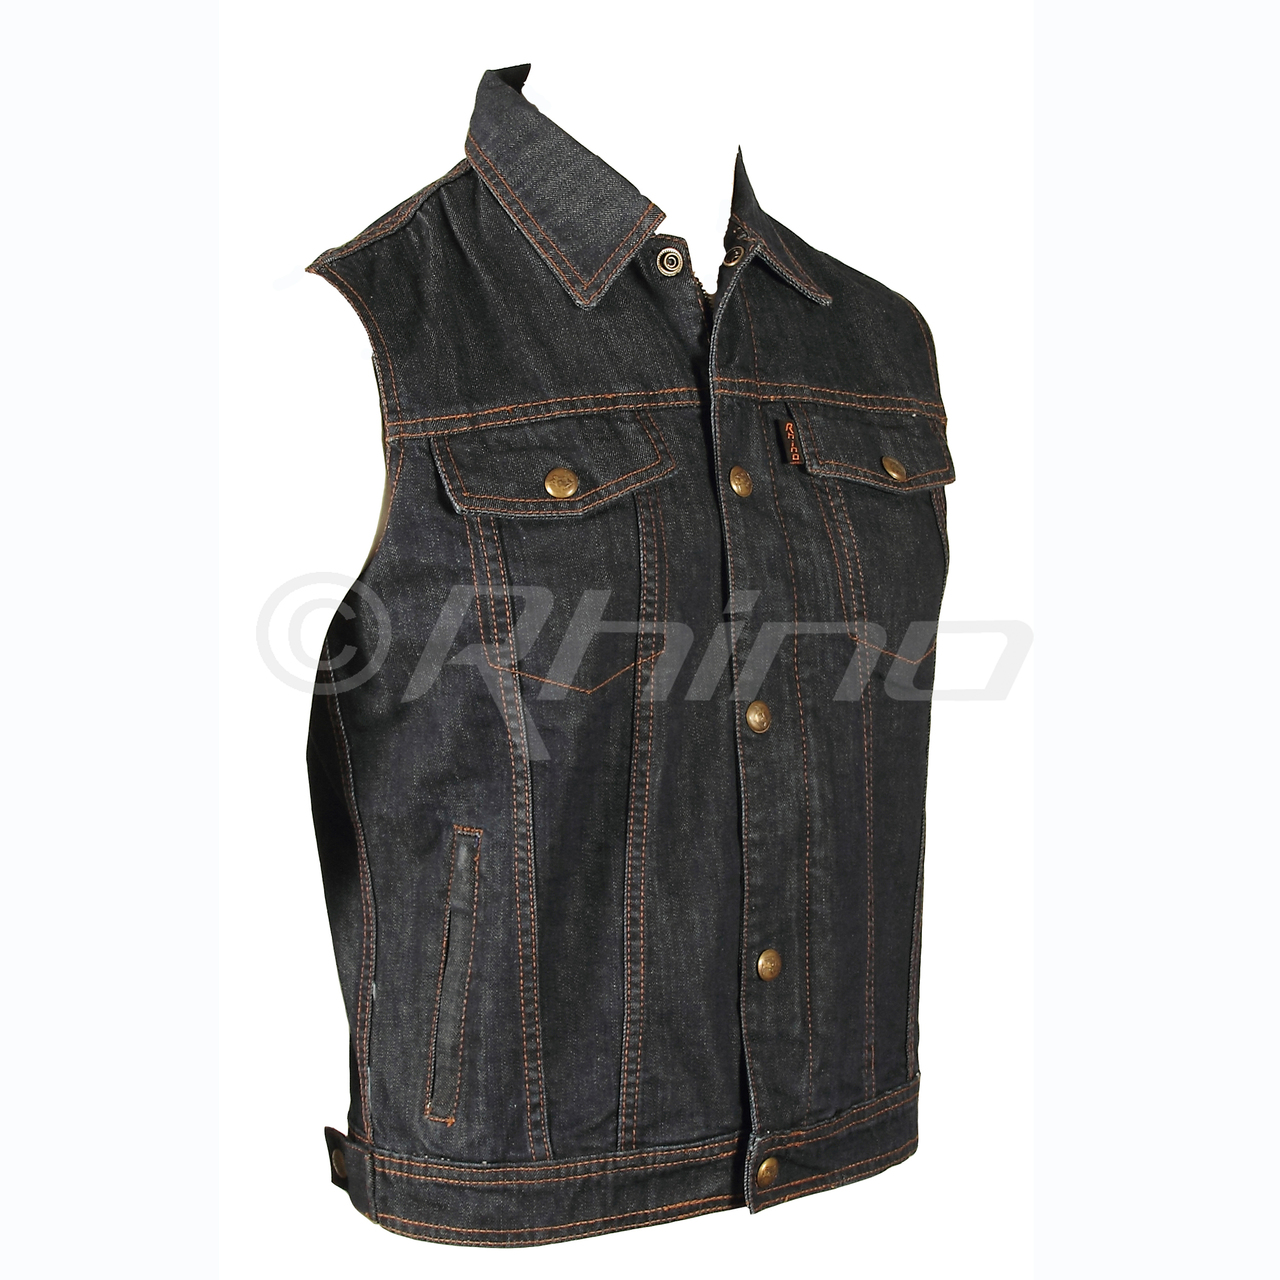 Rebel Styles For Rebel Riders A classically designed leather motorcycle vest is the symbol of the rebellious road warrior. Whether you want to give off a classic Rebel Without a Cause vibe or pay homage to Sons of Anarchy, bikers can speak volumes about their style and their roots with an expertly designed motorcycle vest.